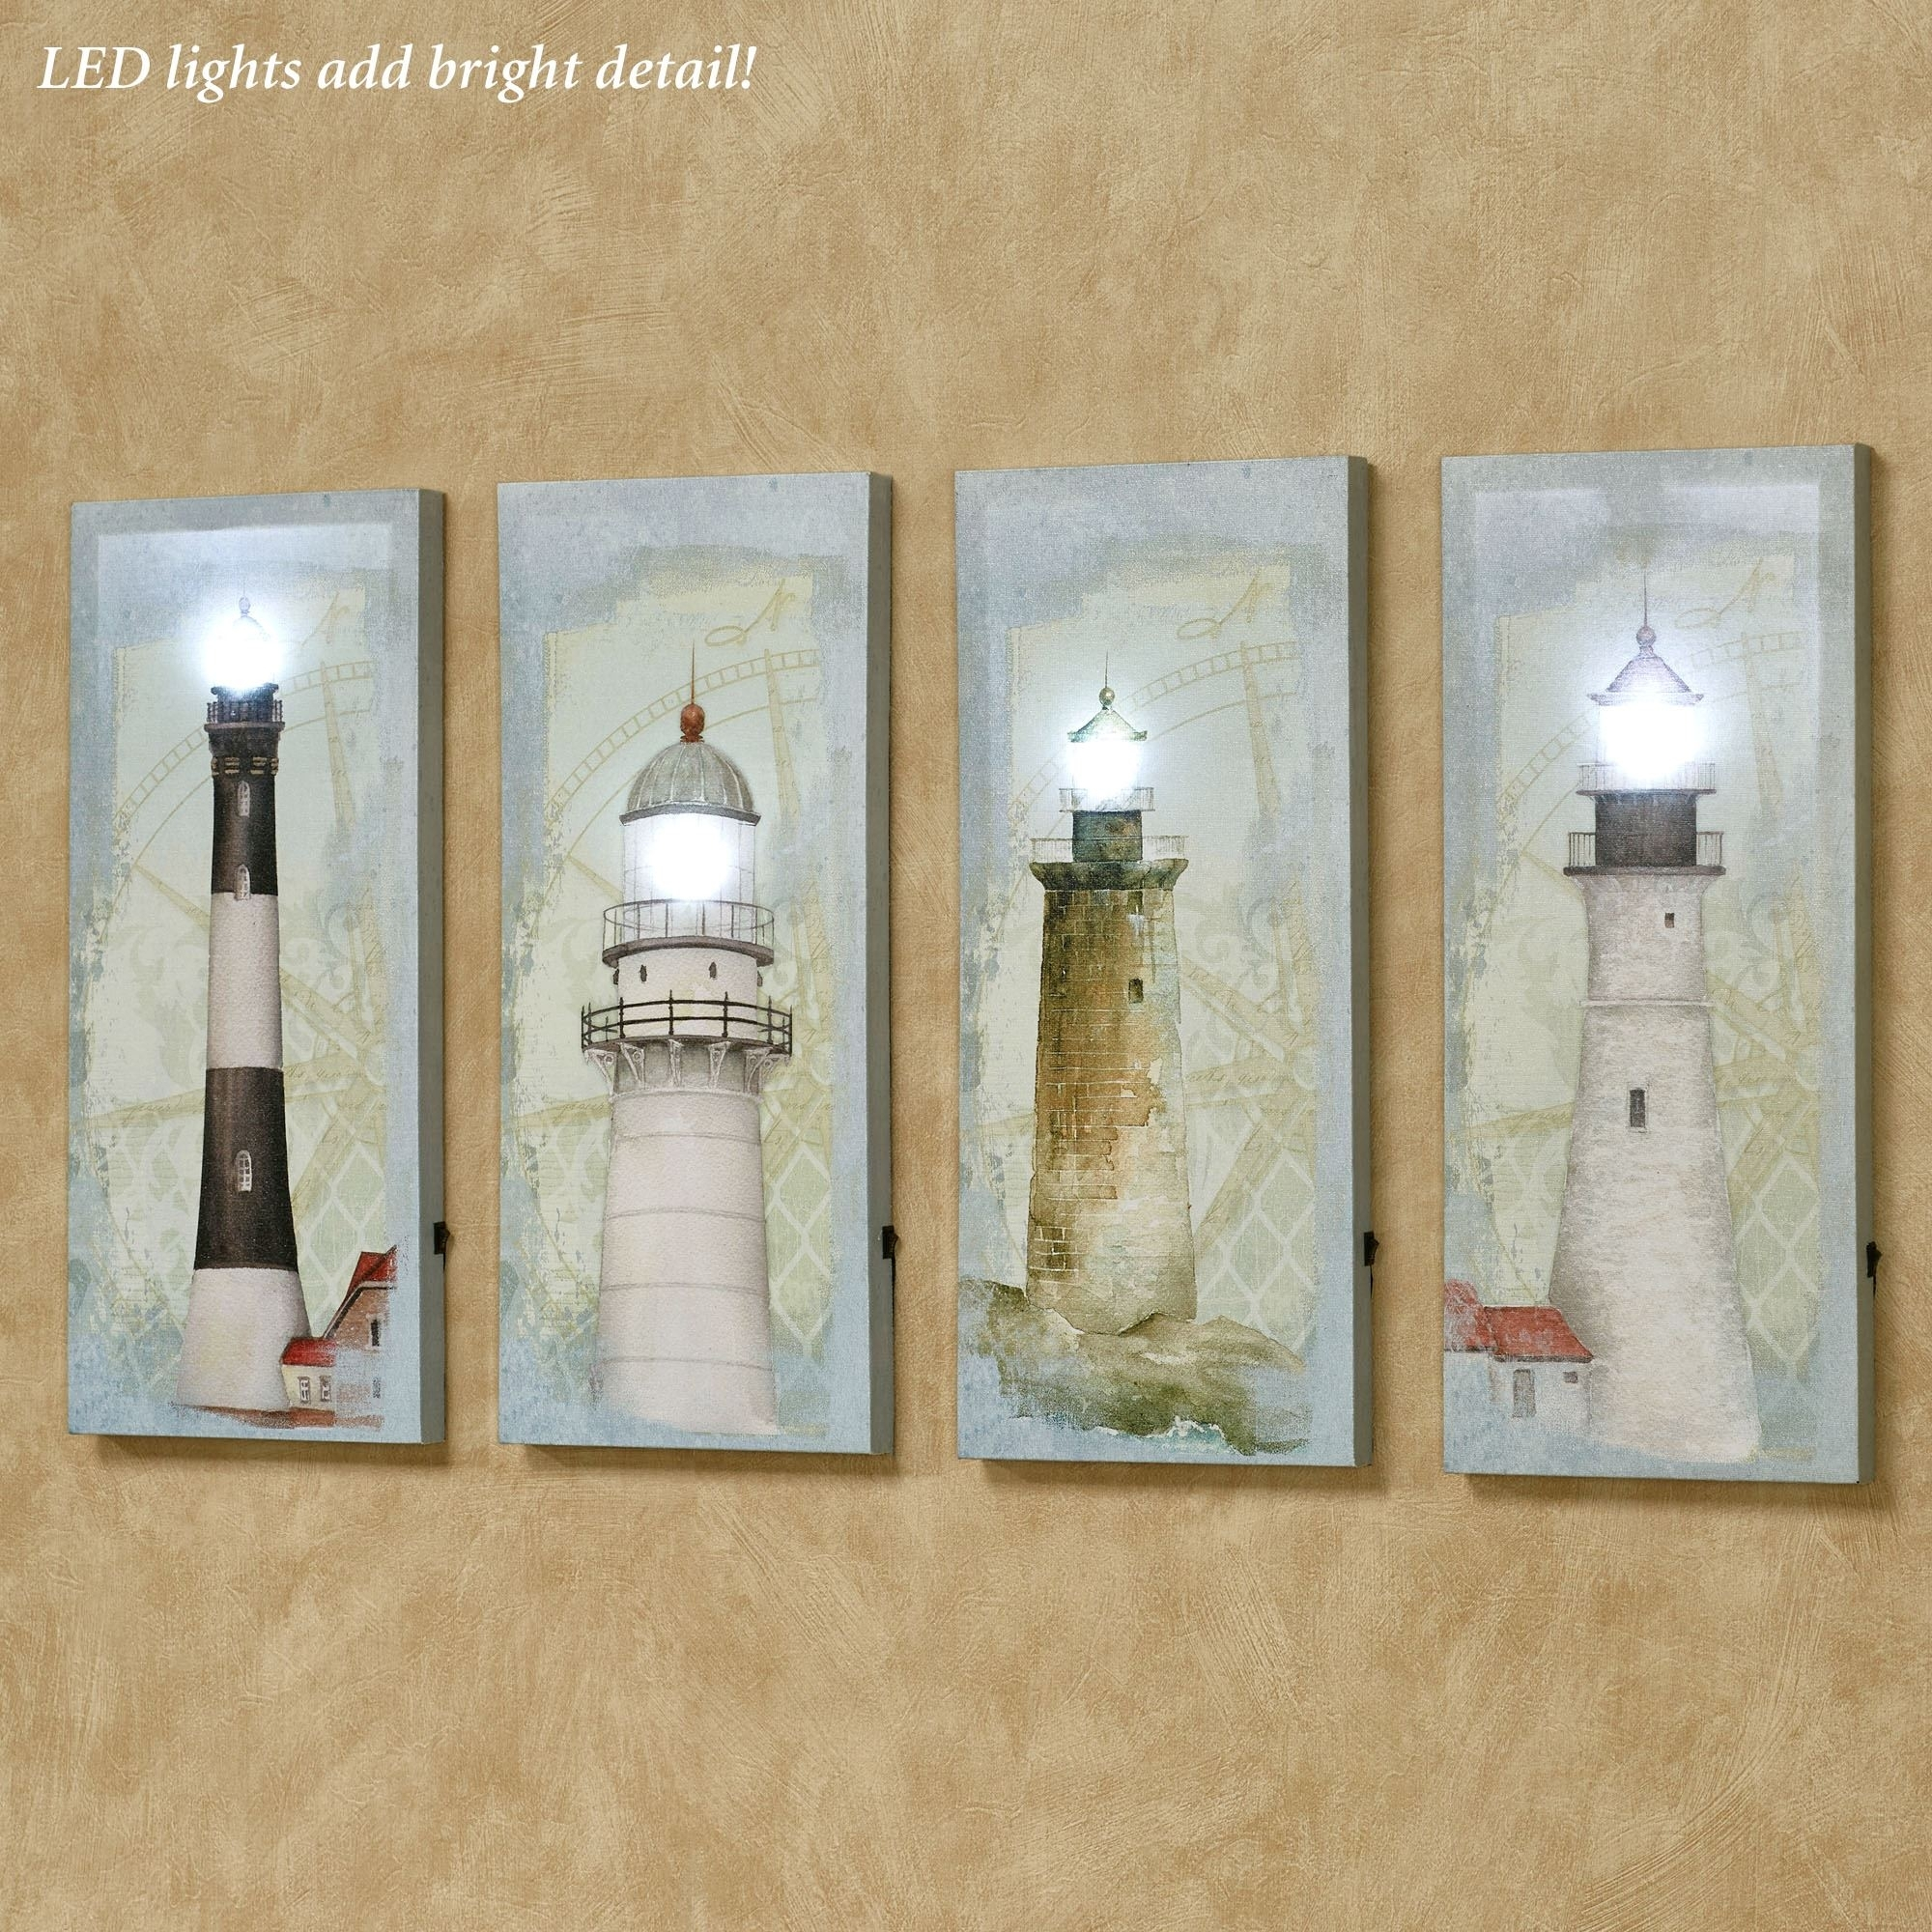 Coastal Lighthouse Led Lighted Canvas Wall Art Set Regarding 2017 Lighted Canvas Wall Art (View 2 of 15)